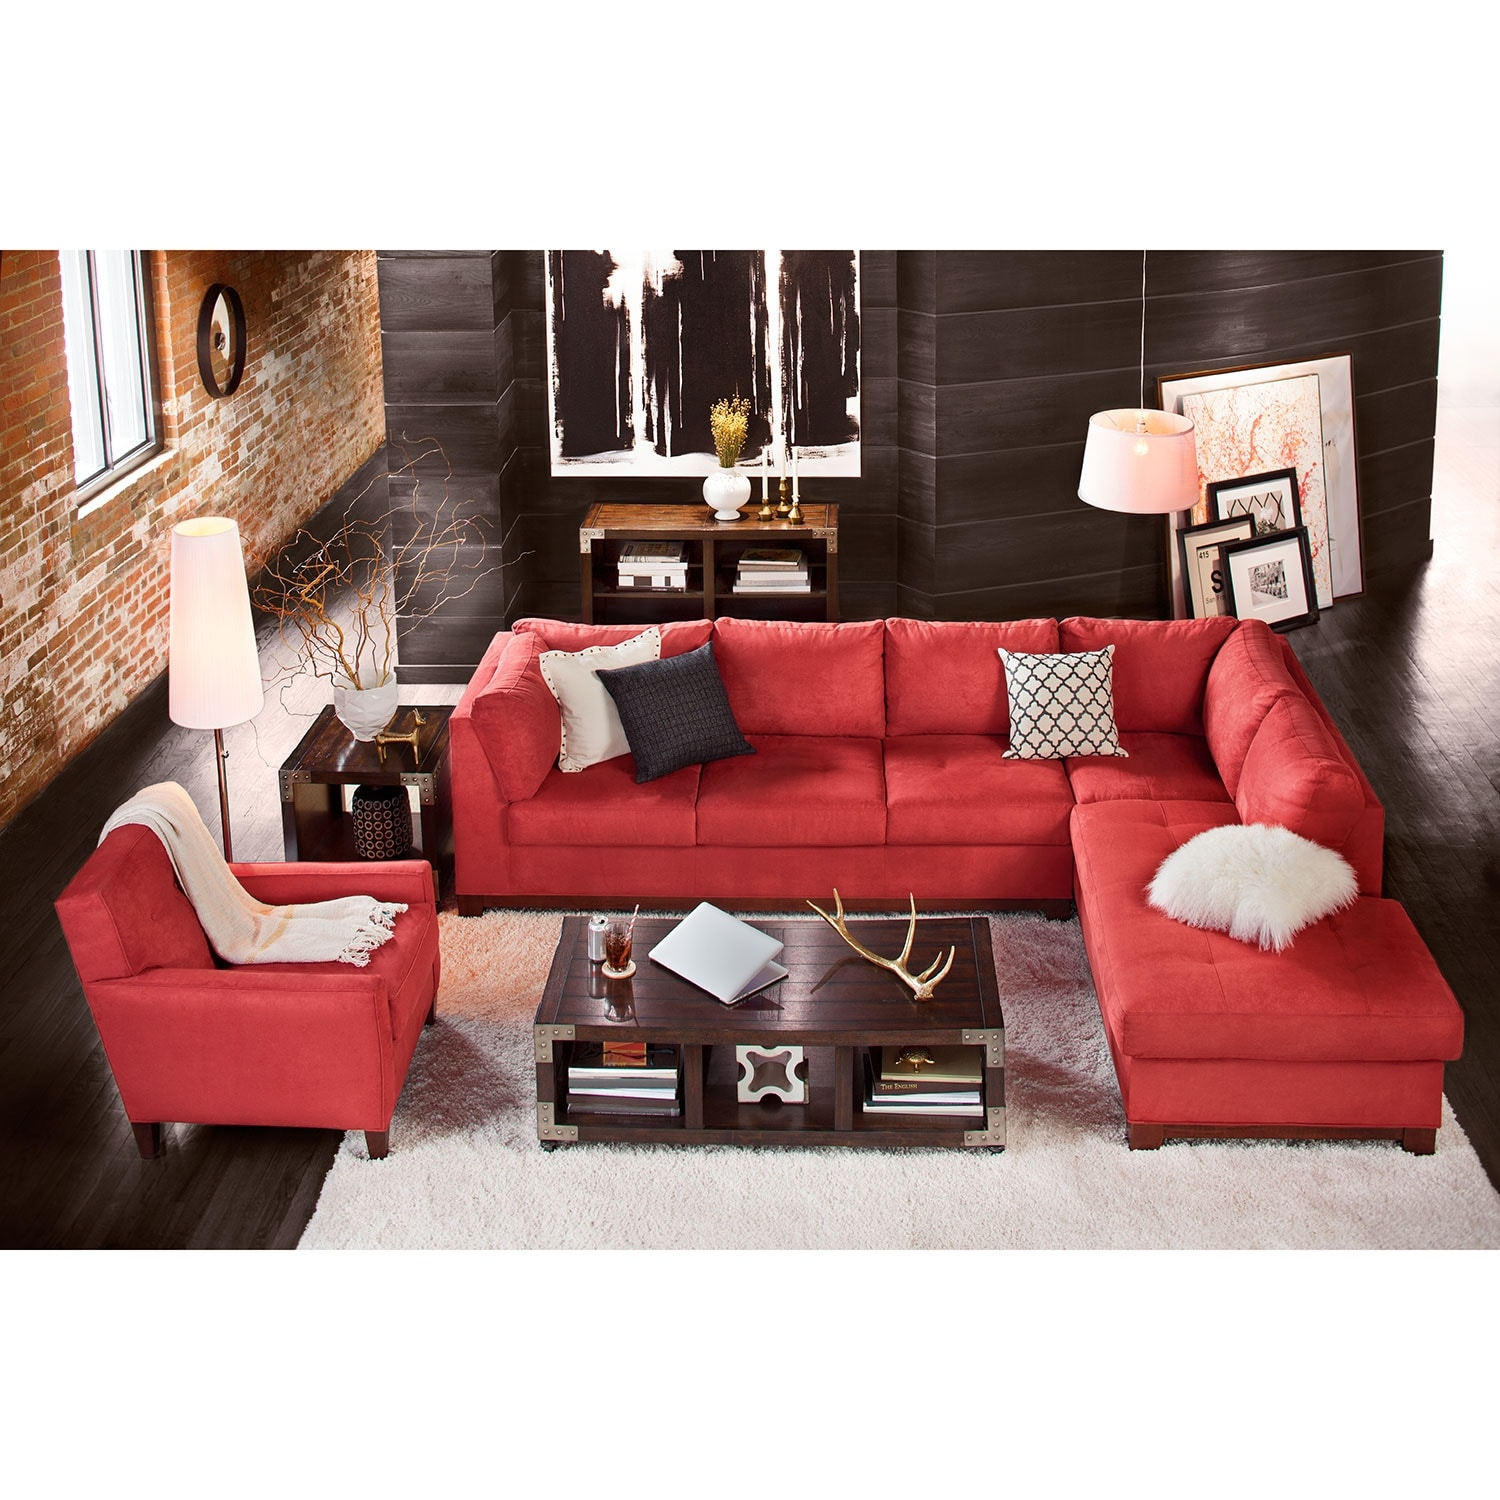 Red Upholstered Living Room Chair With Arms View